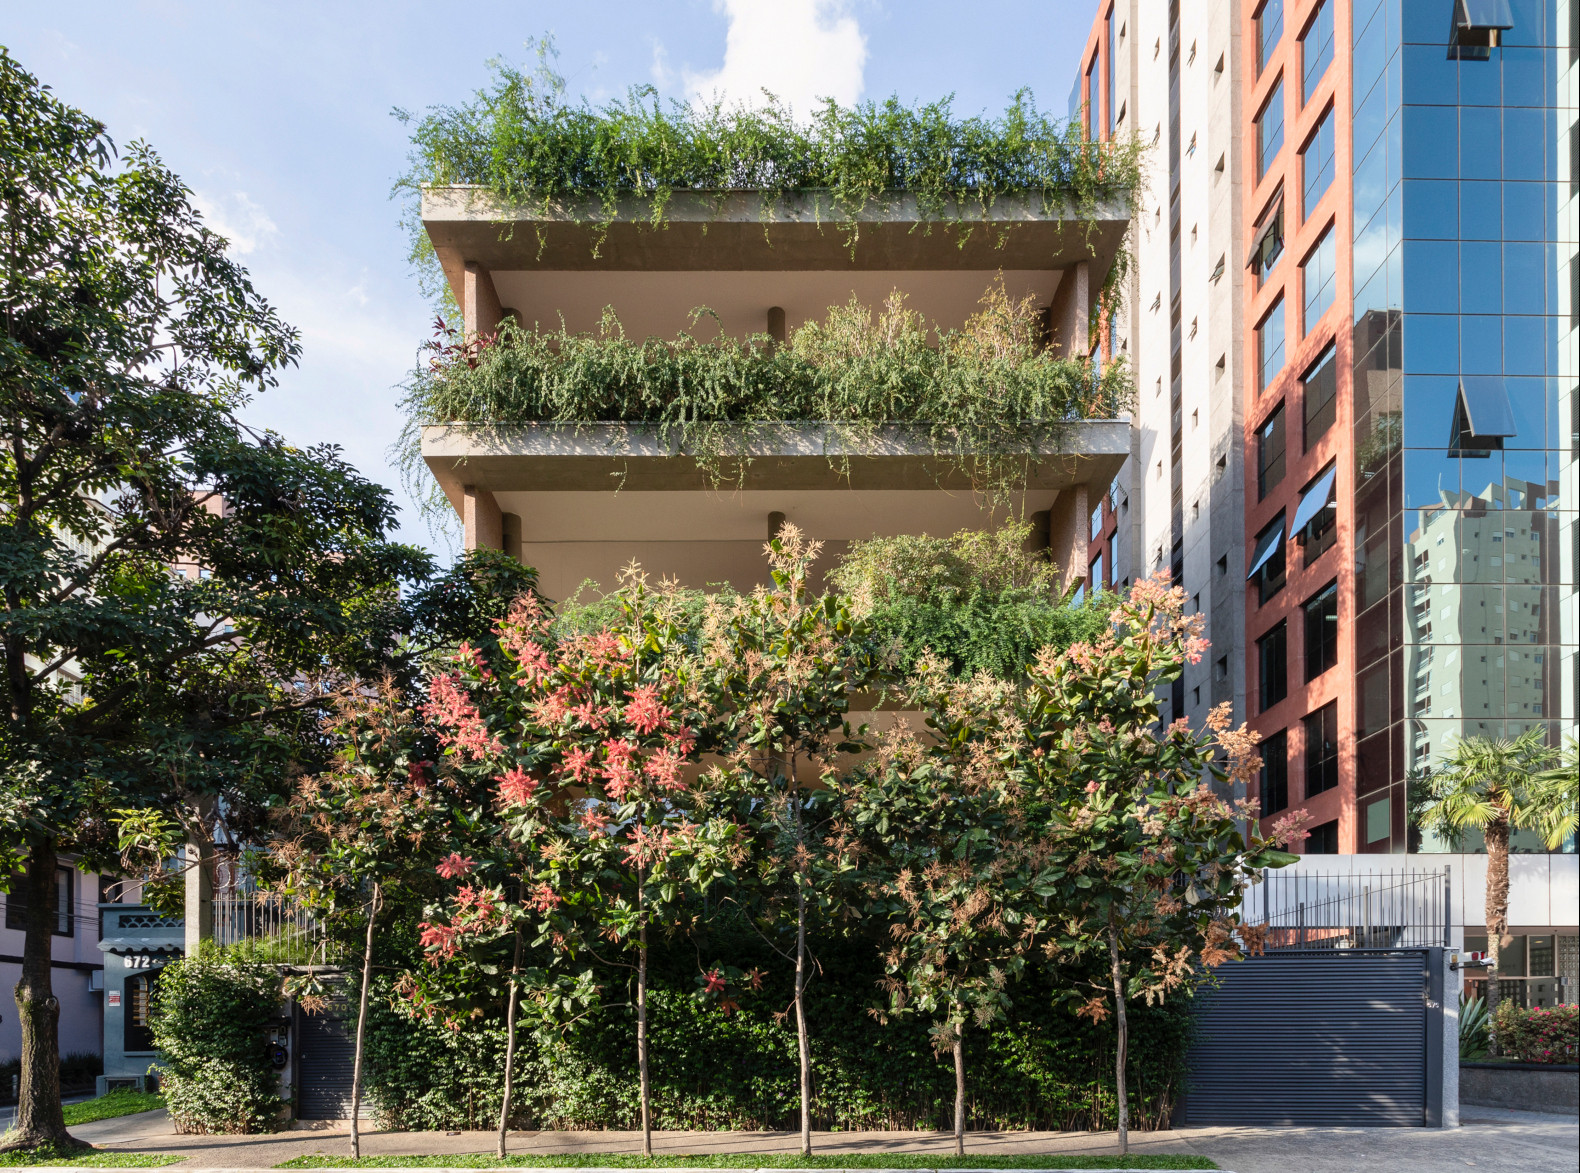 Architects transform a residential building into a lush, green oasis in the heart of São Paulo